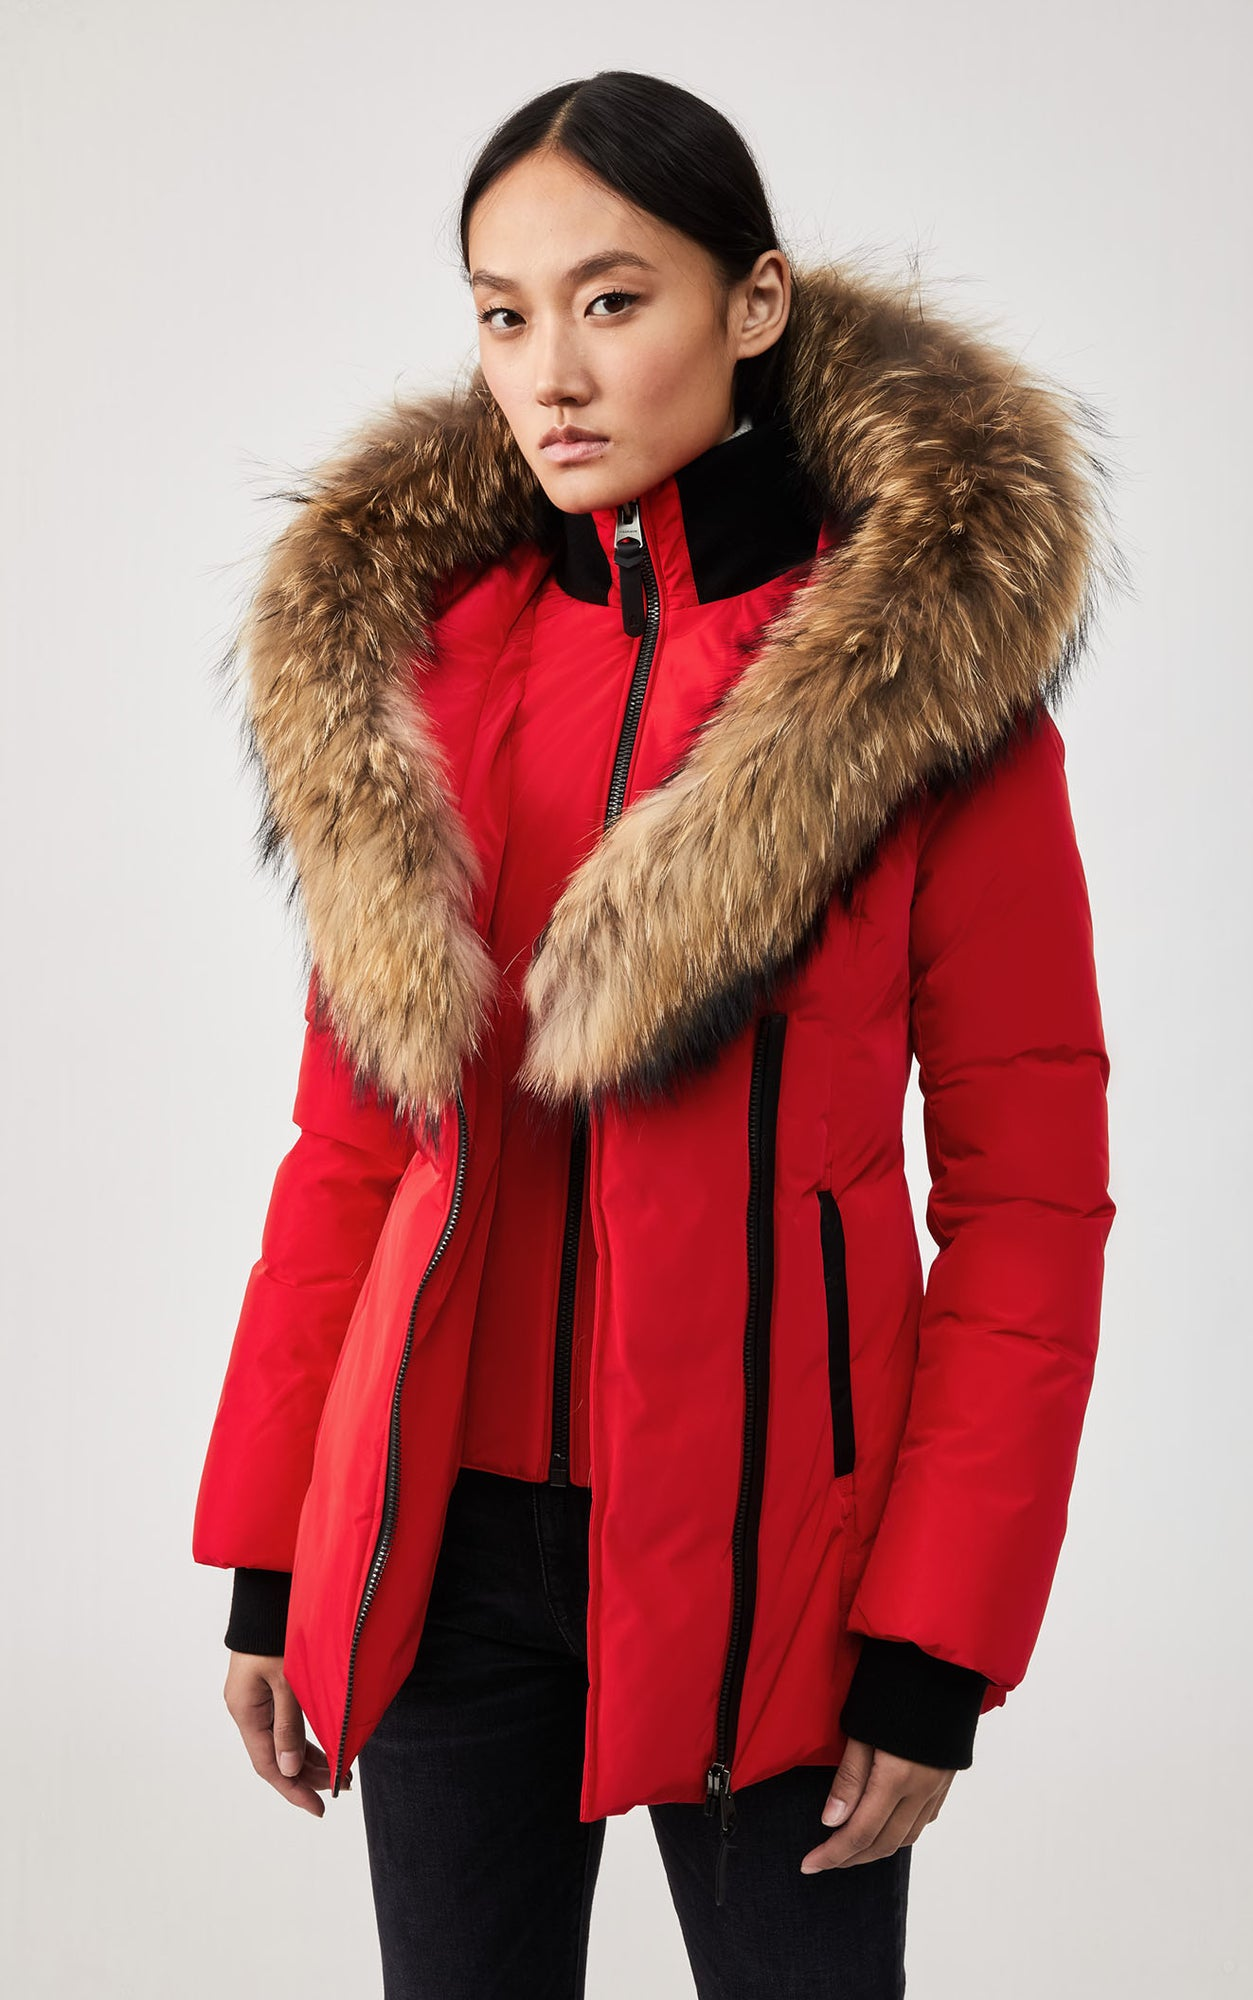 MACKAGE ADALI DOWN WOMEN'S COAT W/ NATURAL FUR COLLAR ADALI-R-RED